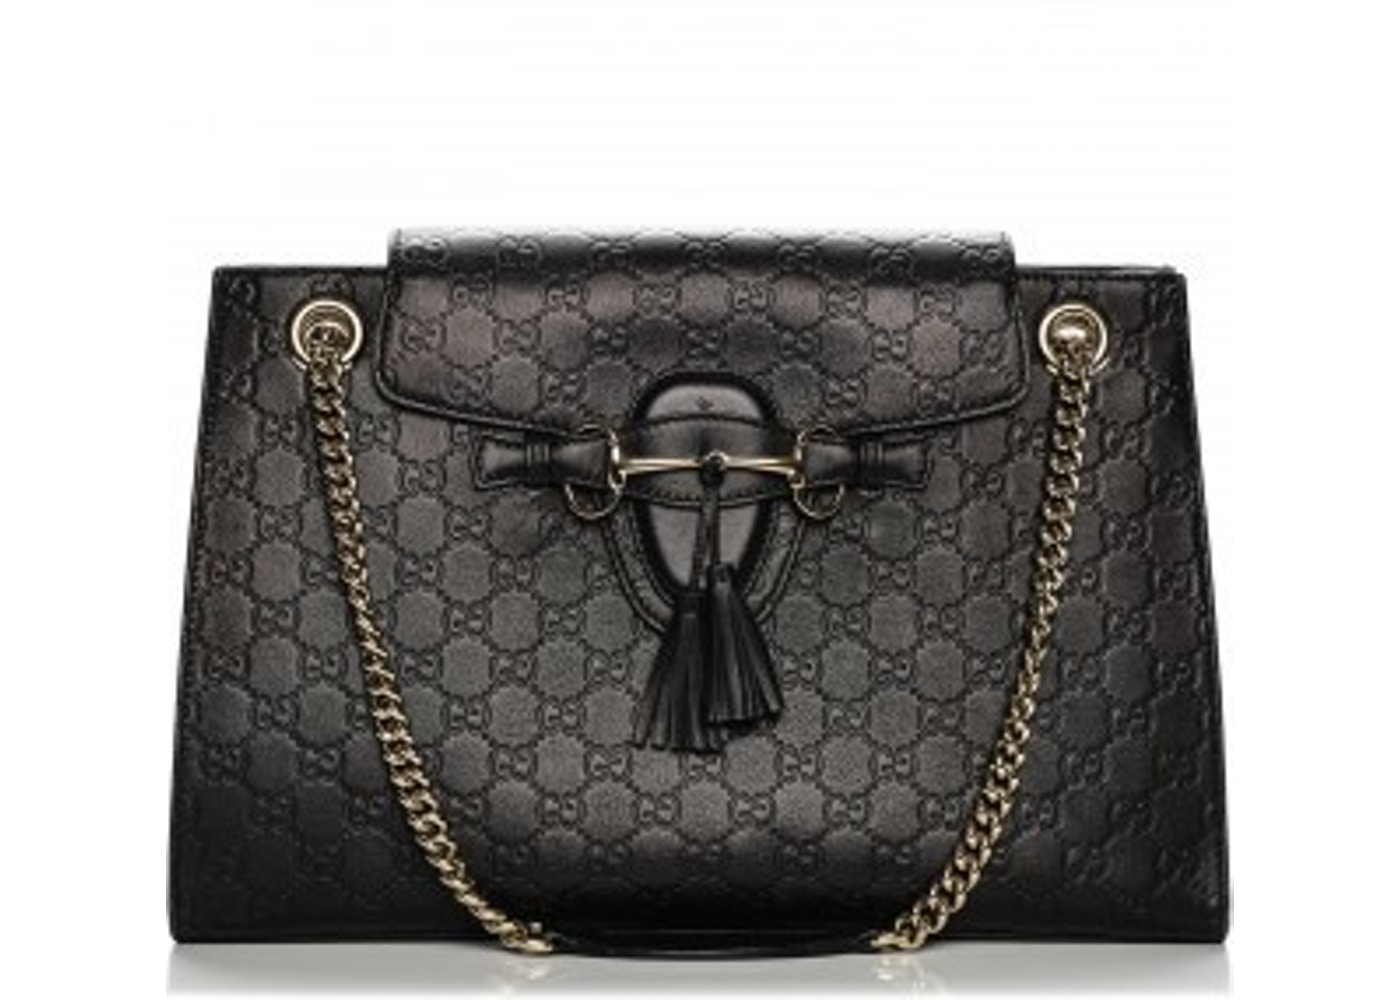 c64daf0d804a0e Gucci Emily Chain Shoulder Bag Guccissima Large Black. Guccissima Large  Black